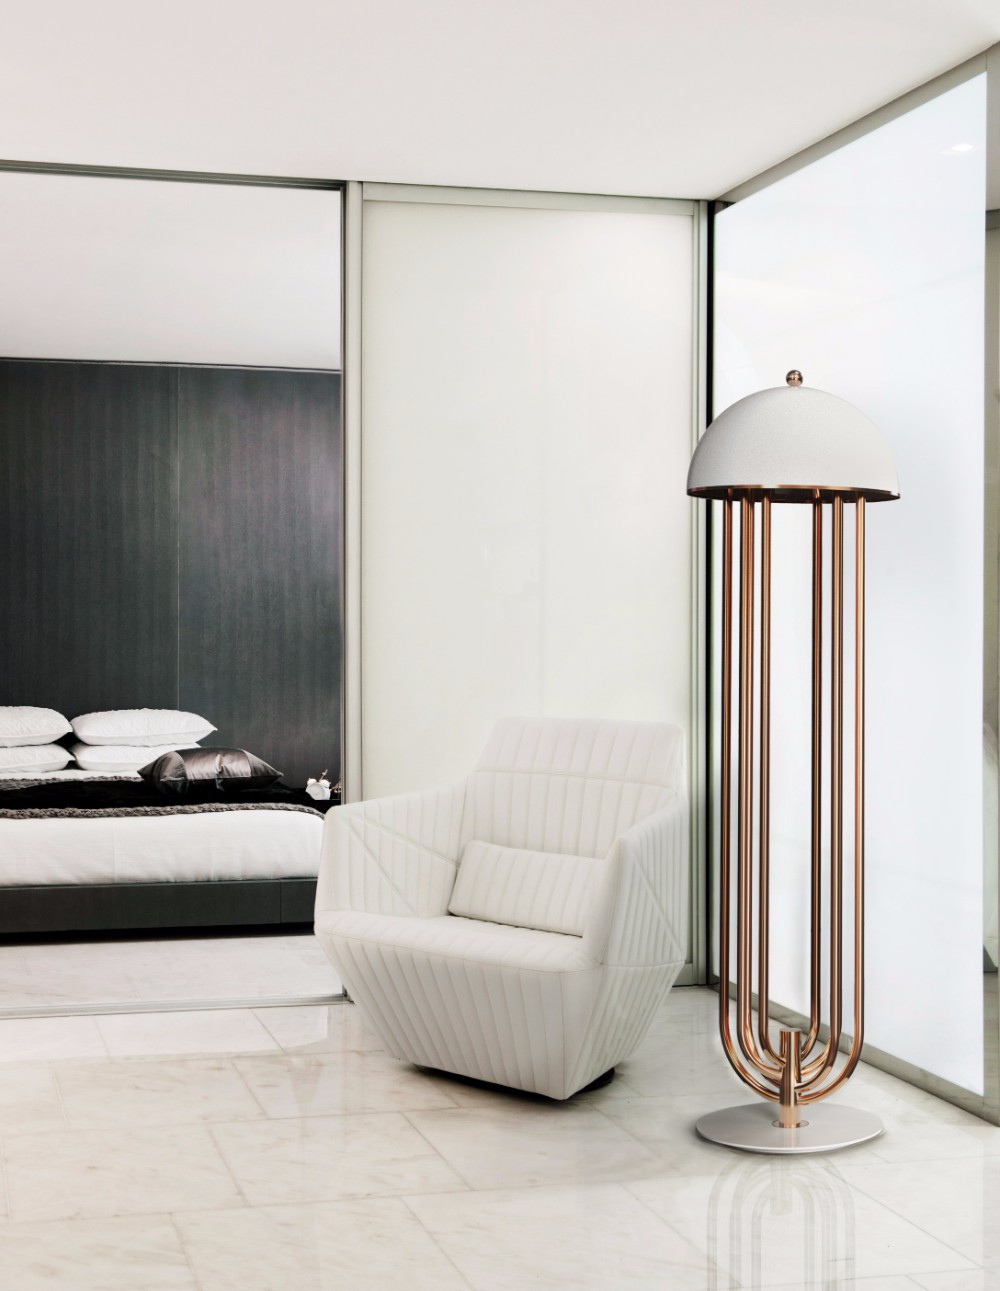 Trending Product Let's Dance with This Trendy Mid-Century Floor Lamp 1